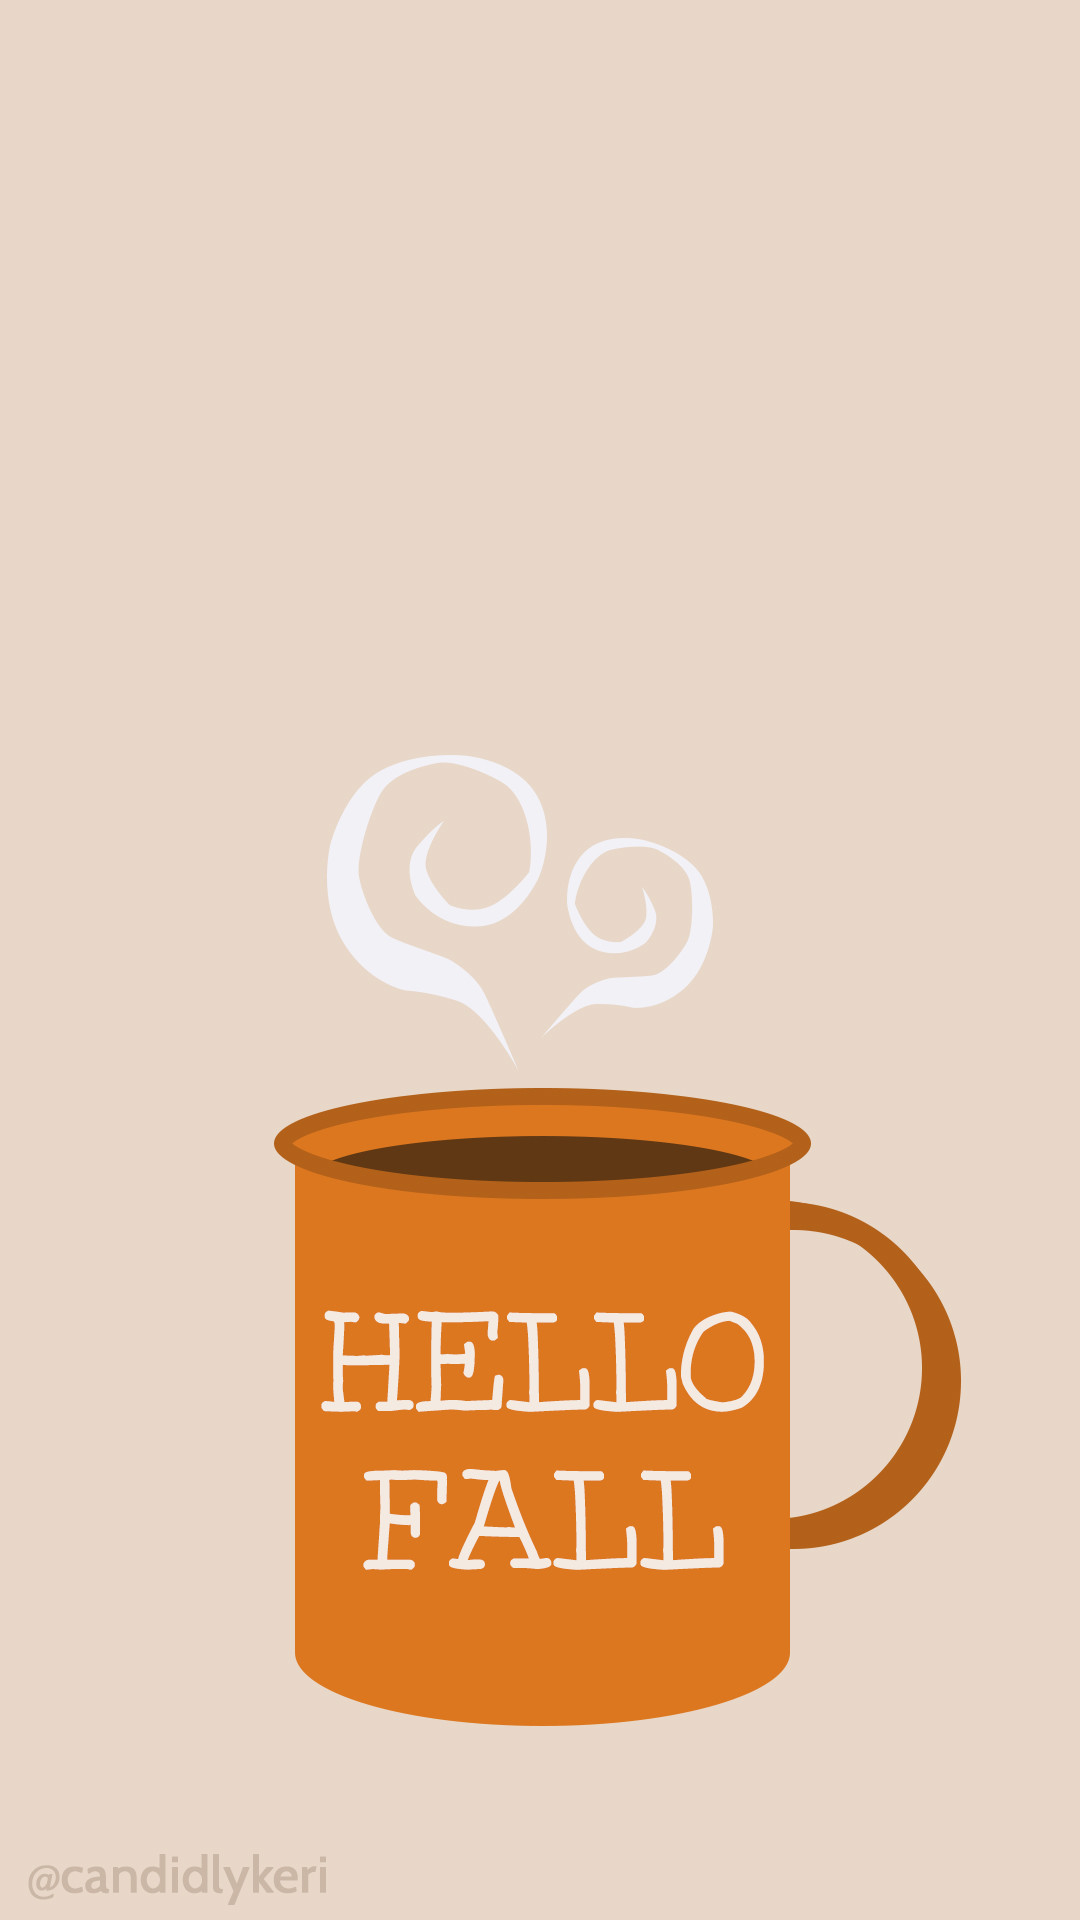 Hello Fall mug cute fall wallpaper 2016 wallpaper you can download for free  on the blog